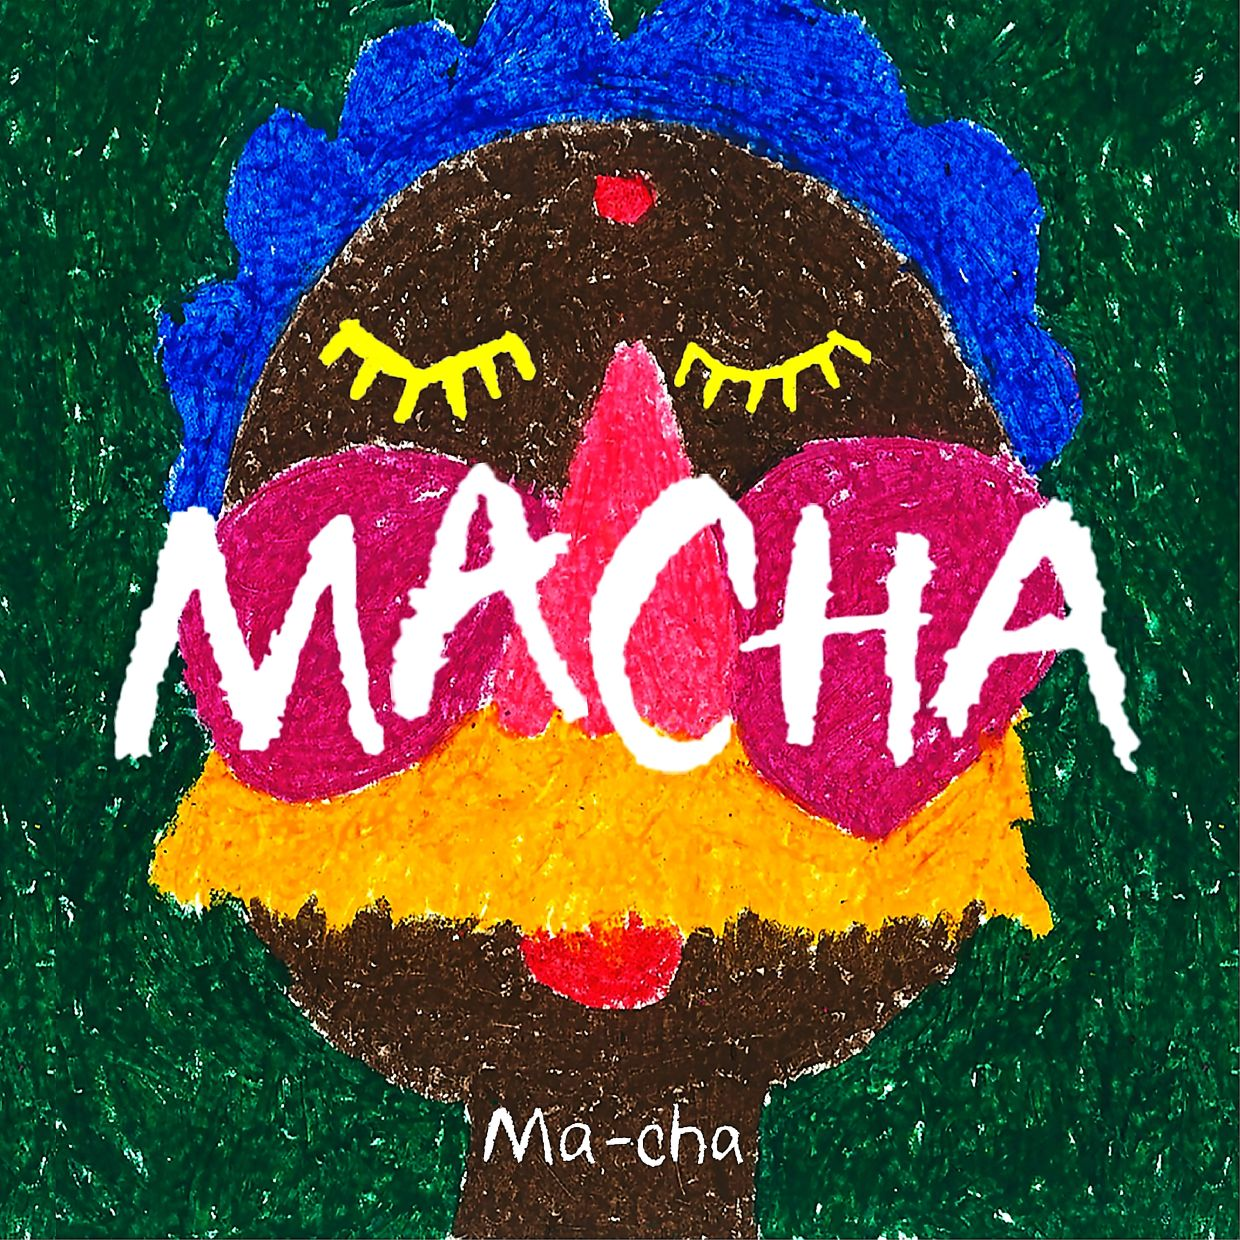 In Tamil, macha means brother-in-law. Malaysians, however, use it as another term for 'bro'.